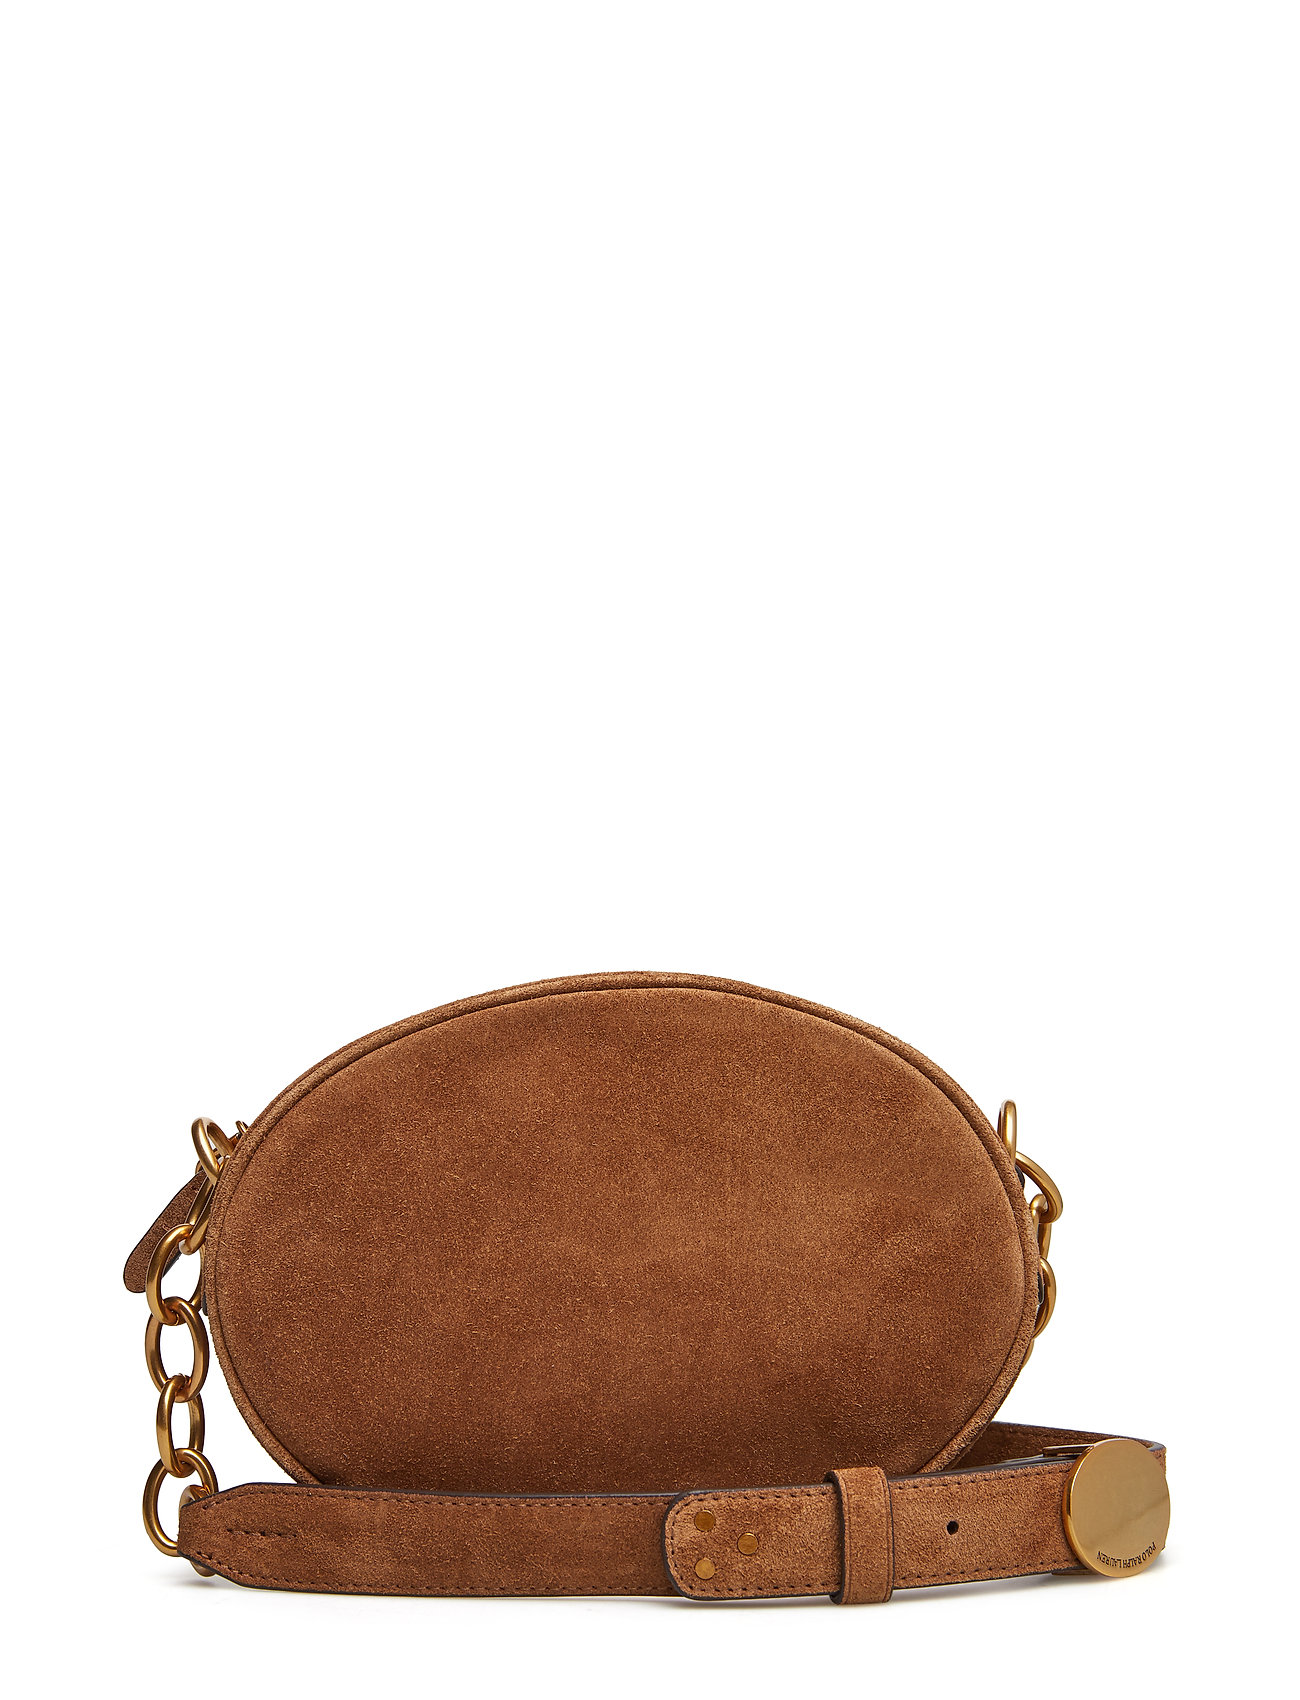 Polo Ralph Lauren SUEDE-GILLY XBDY-CXB-MED